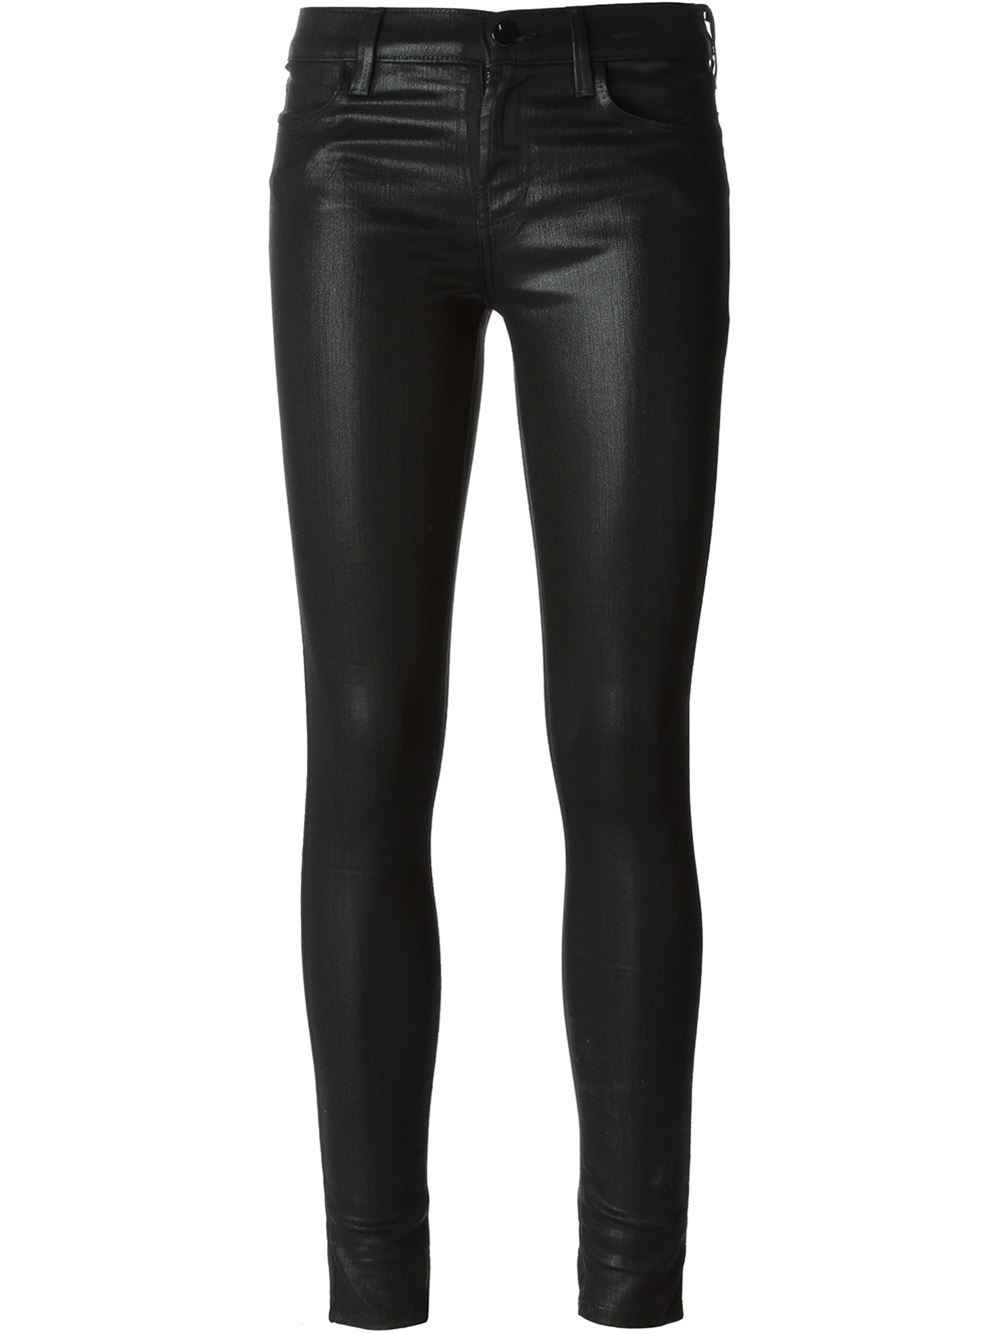 Find black wax skinny jeans at ShopStyle. Shop the latest collection of black wax skinny jeans from the most popular stores - all in one place.